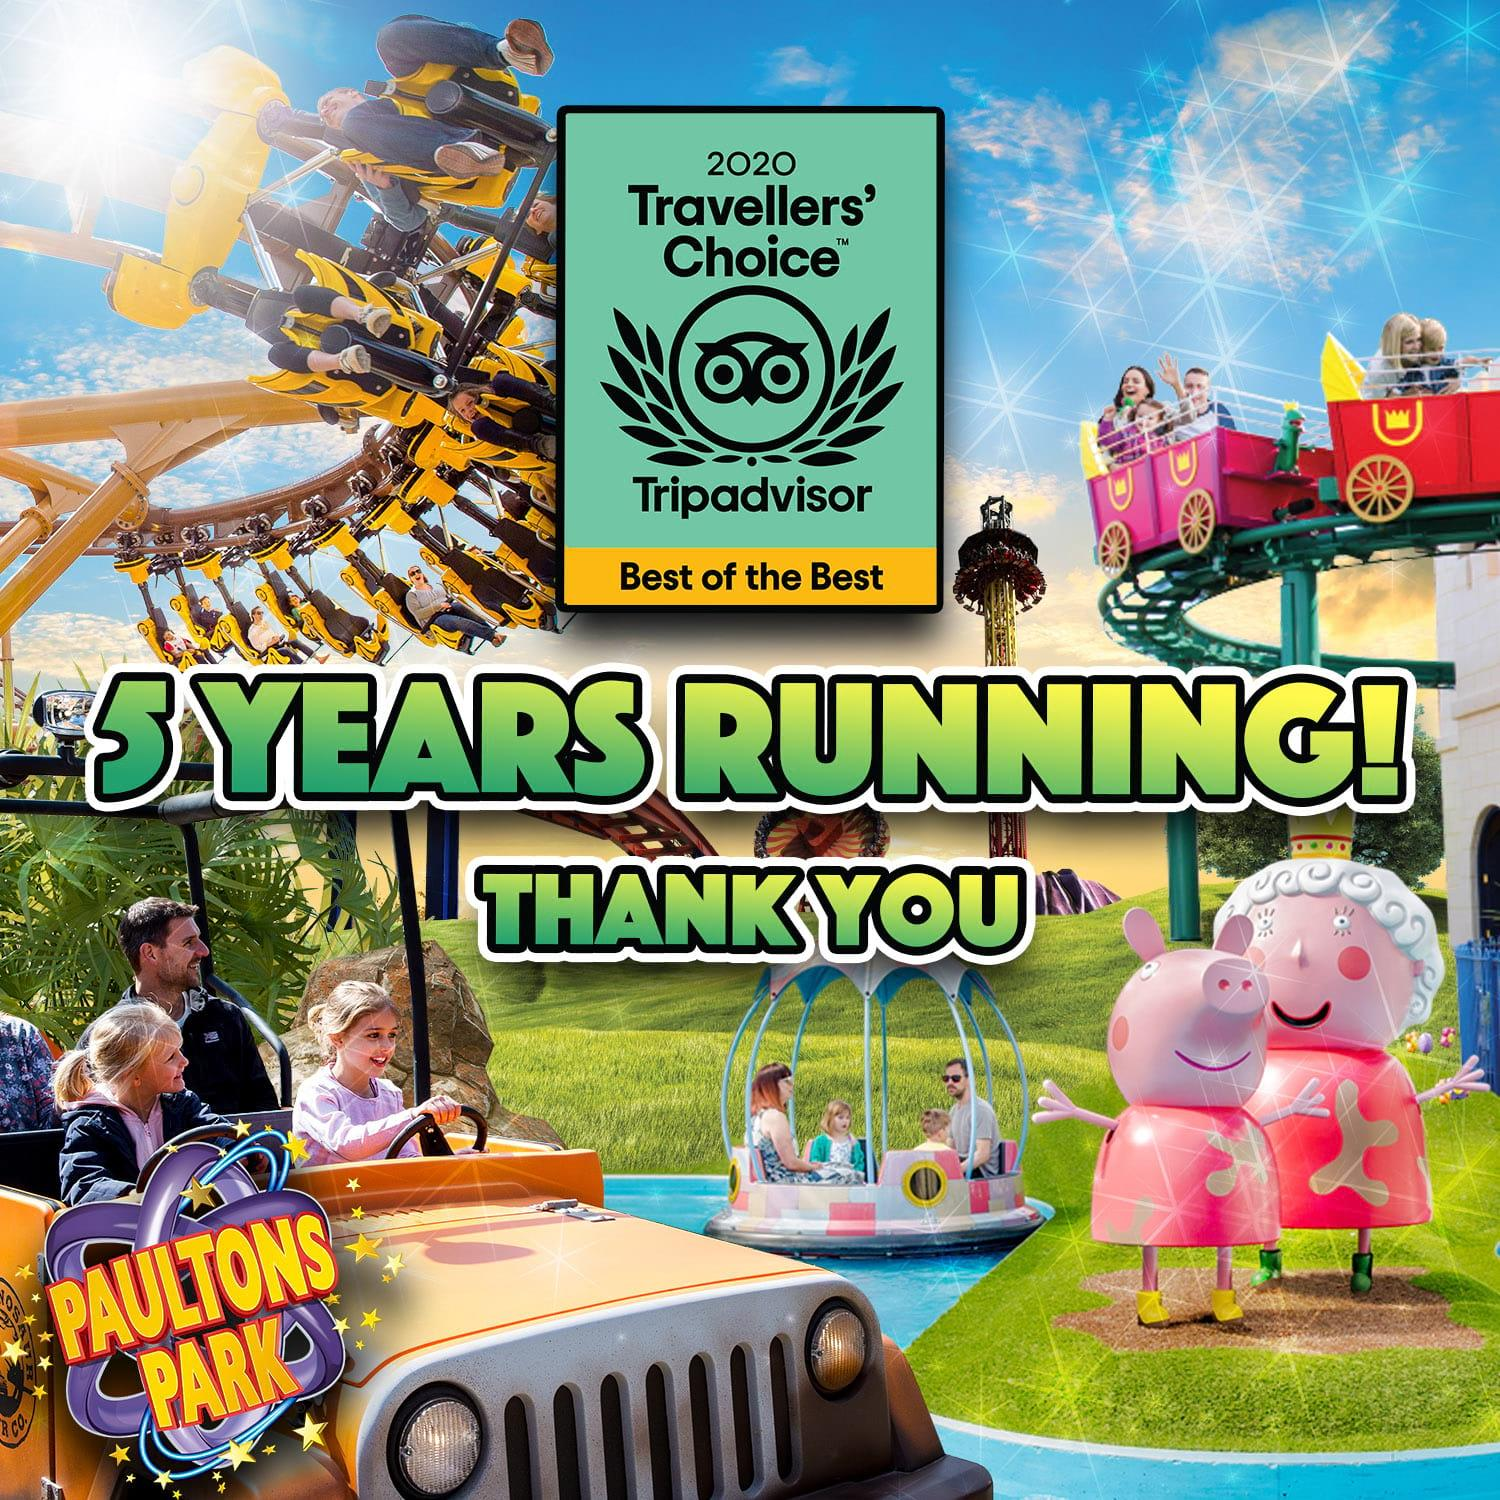 PAULTONS PARK NAMED ONE OF THE WORLD'S TOP TEN AMUSEMENT PARKS IN 2020 TRAVELLERS CHOICE AWARDS